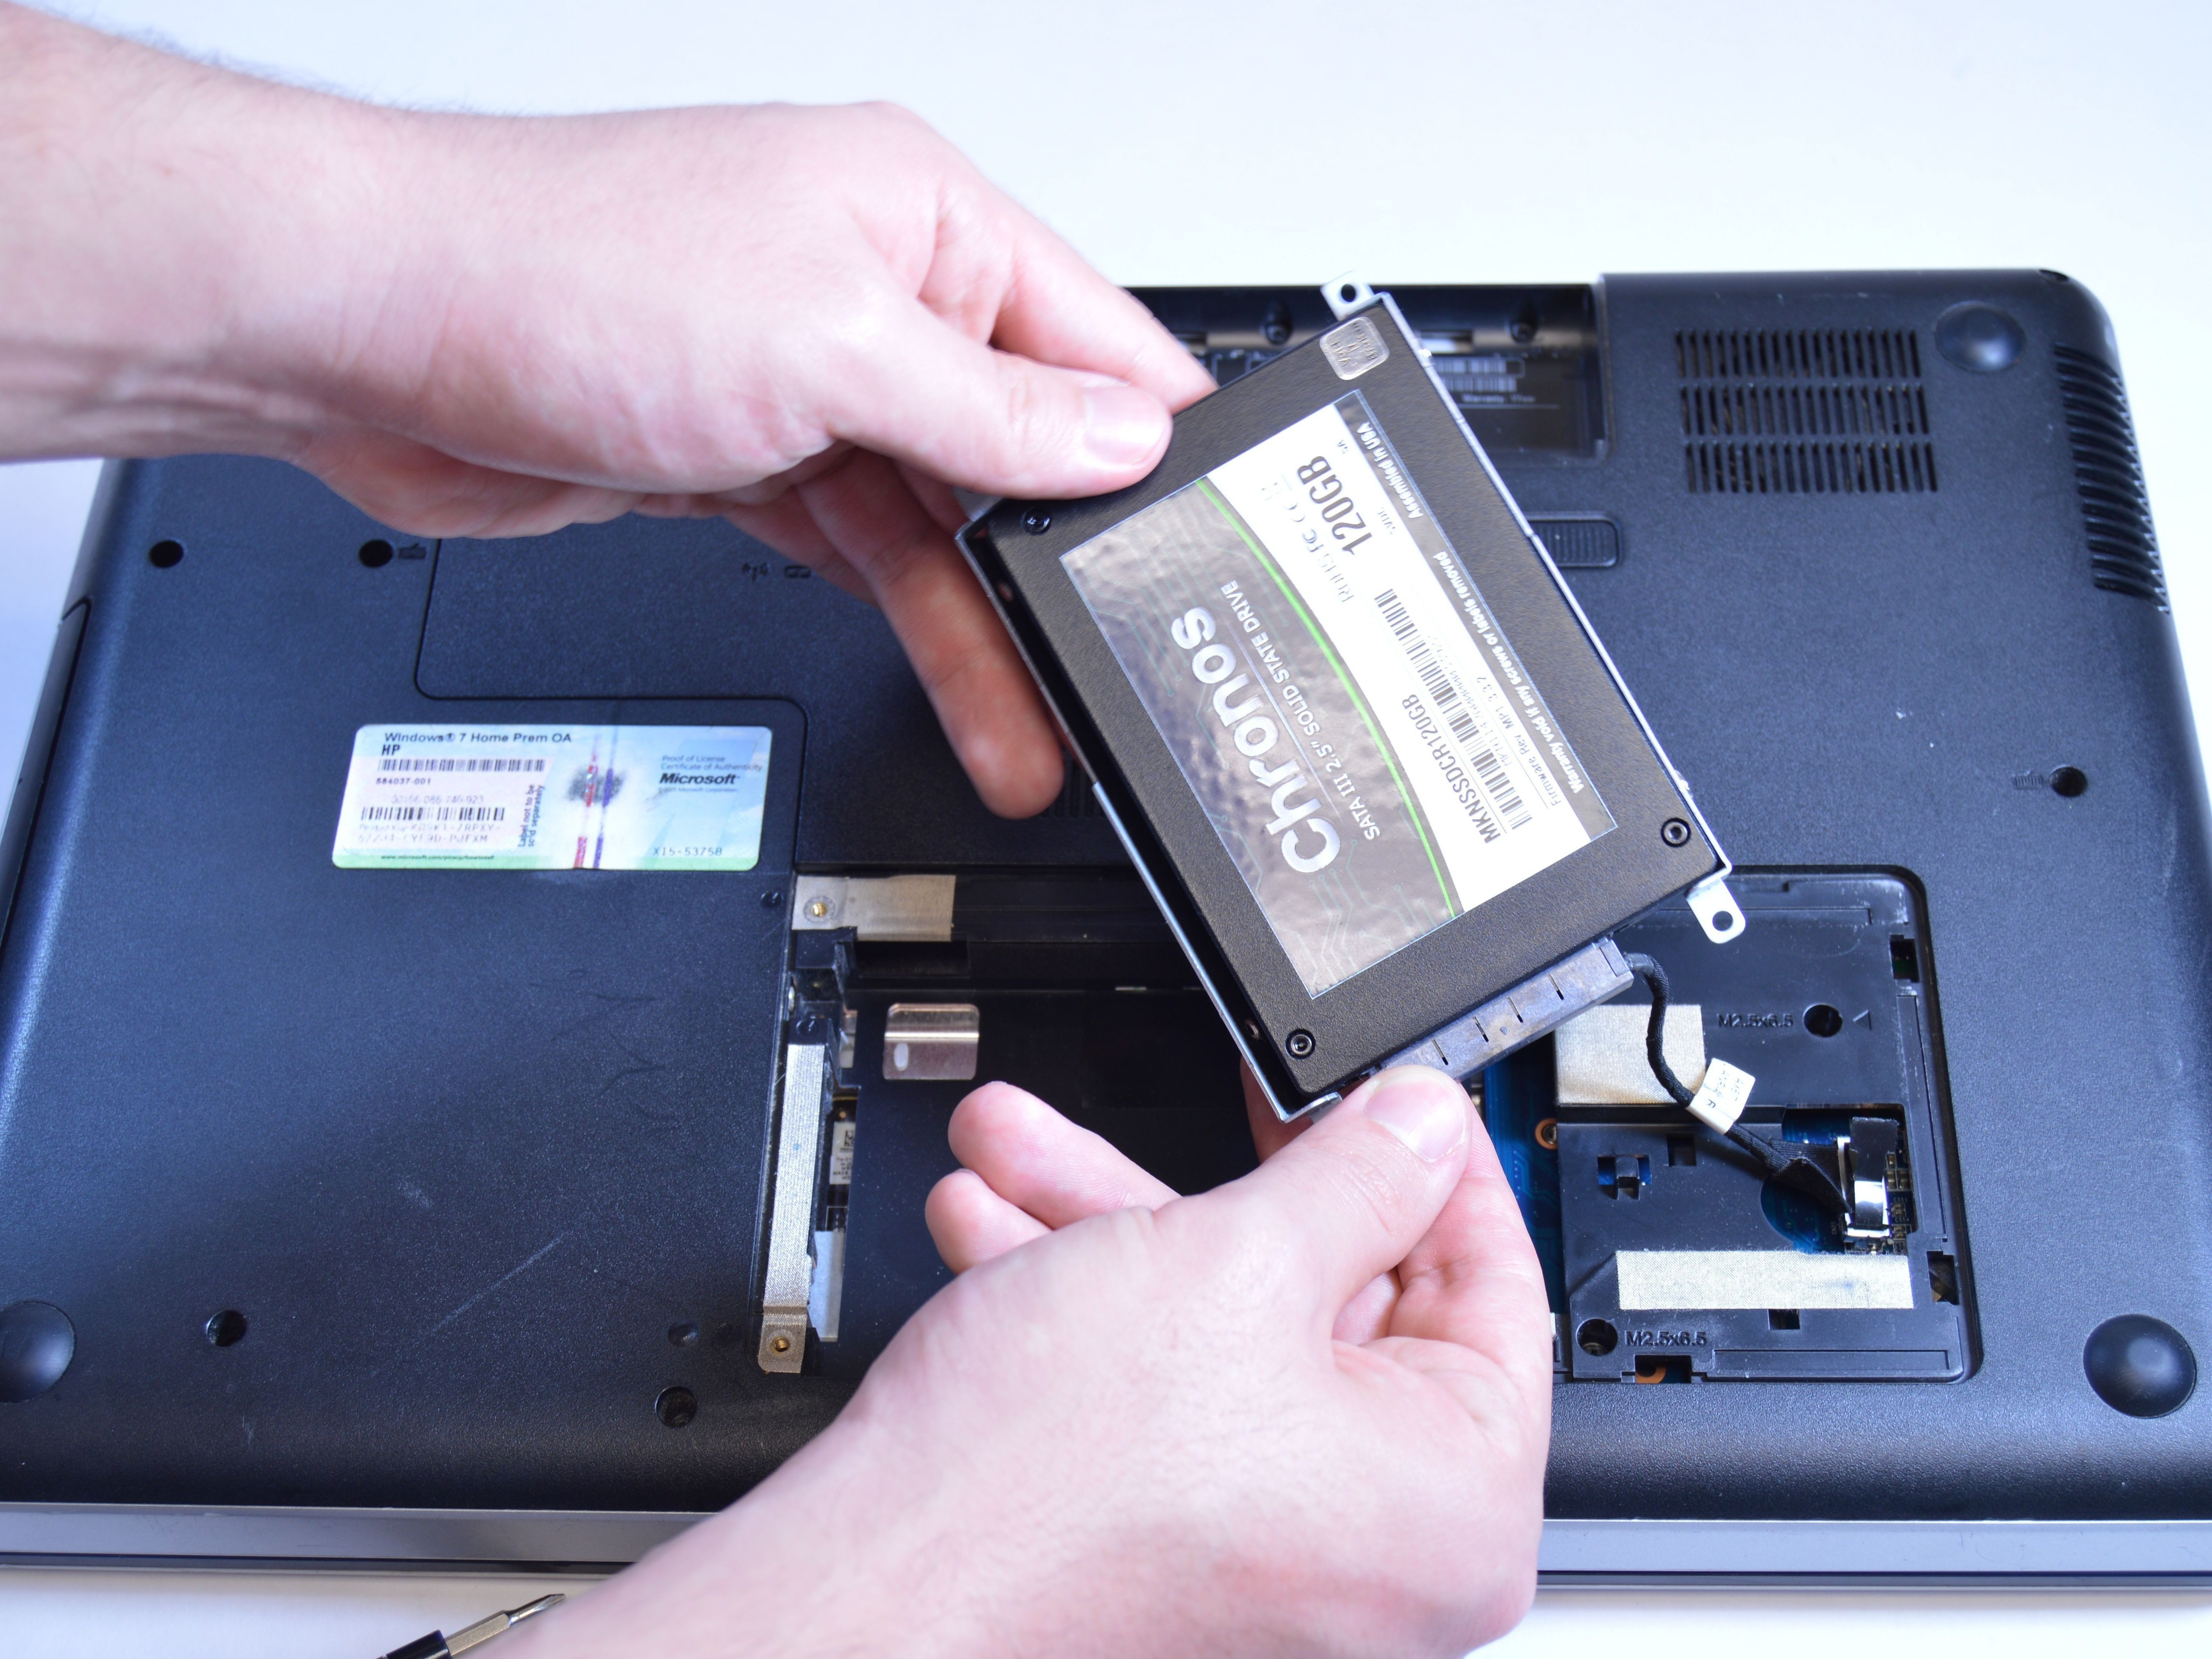 hp g62 223cl hard drive replacement ifixit repair guide